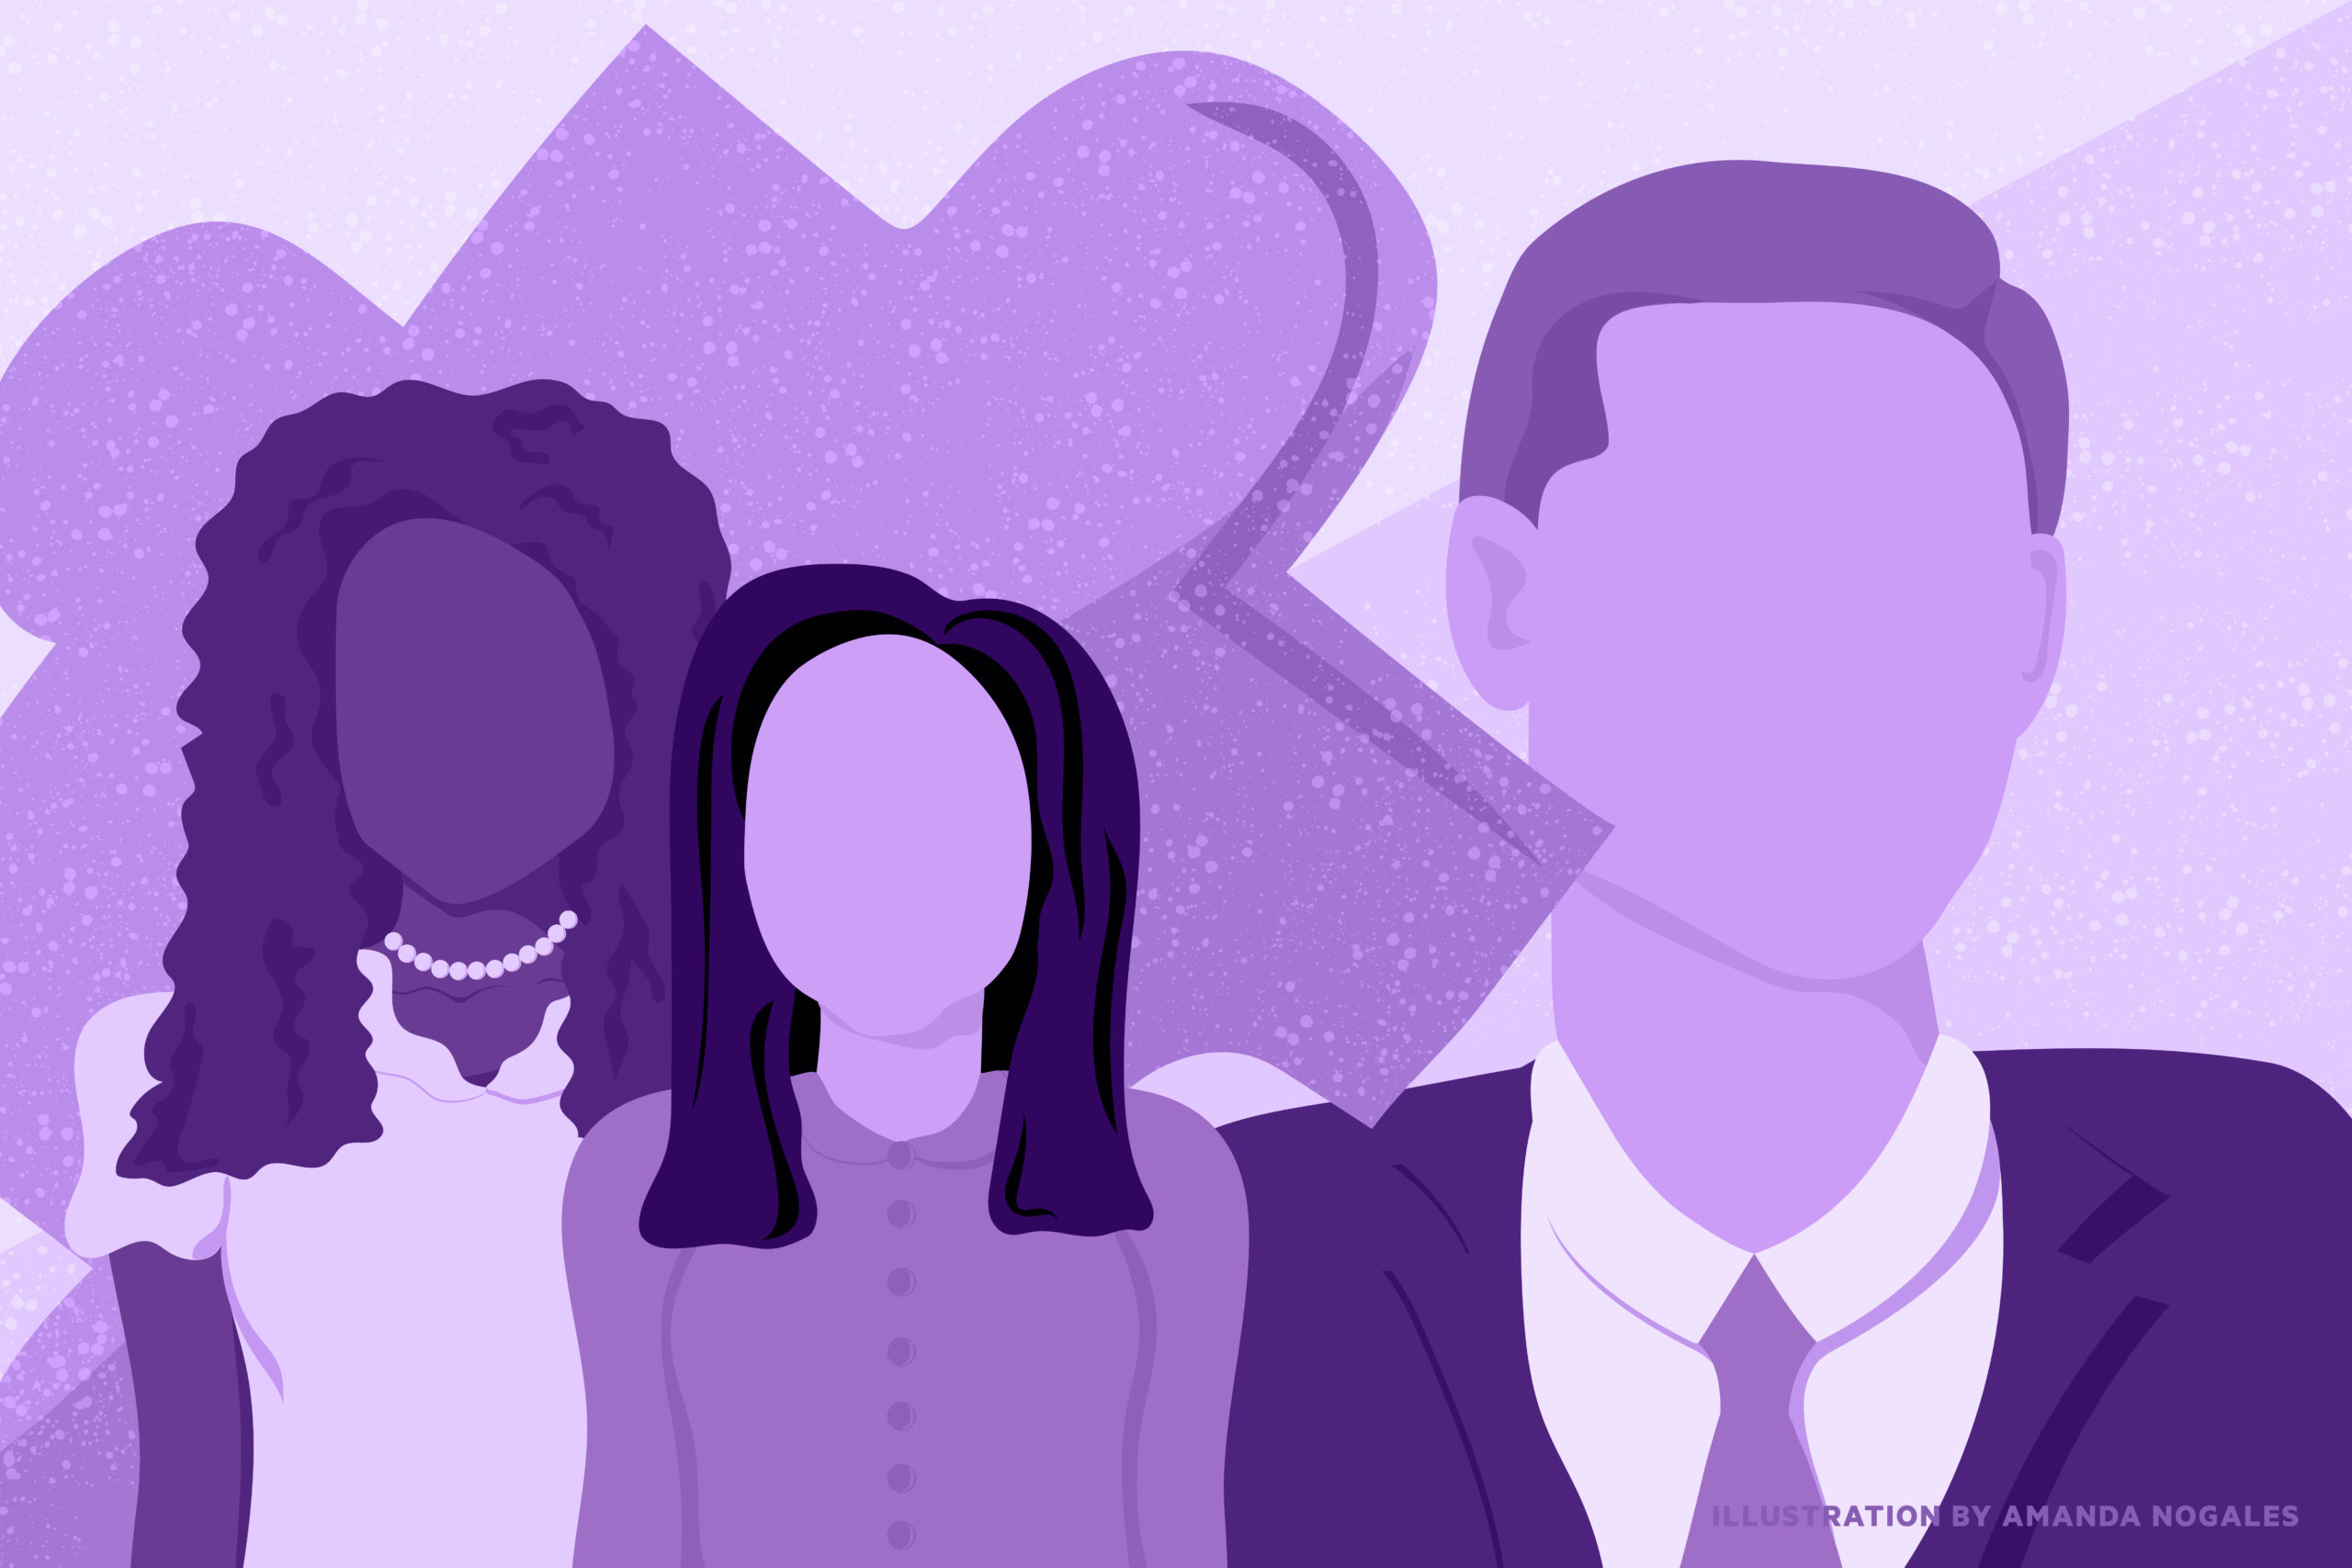 Despite progress made, it's not enough, there are still issues with diversity on corporate boards. But you can help. Here's how.